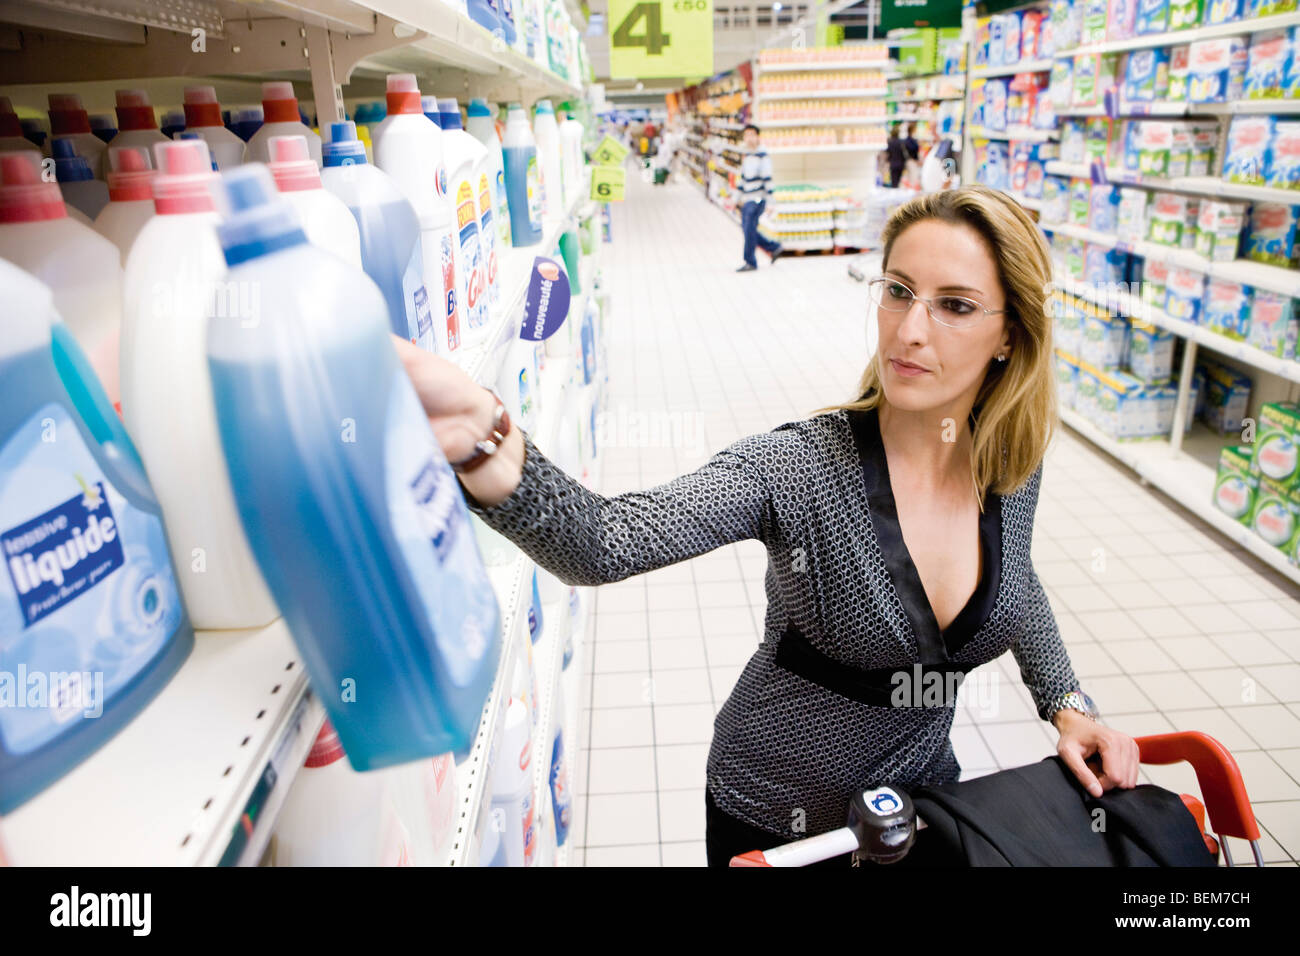 Woman selecting bottle of detergent from supermarket shelf - Stock Image